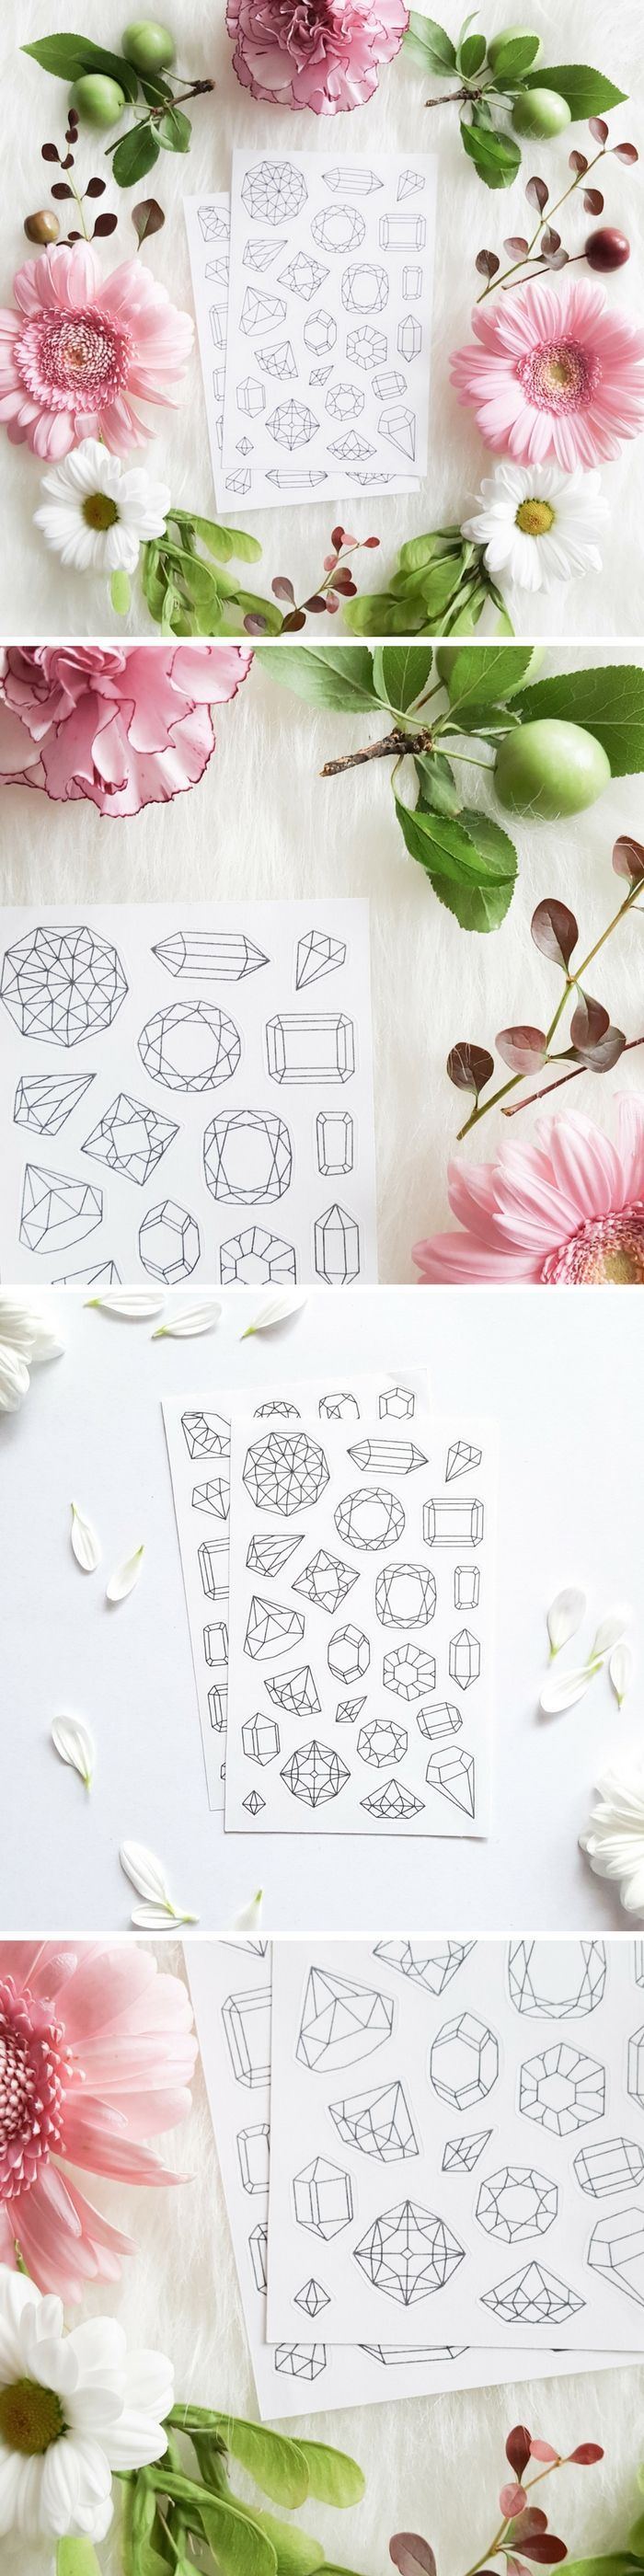 Crystals and Gems Stickers to Color In for DIY Planner Decoration and Paper Crafts